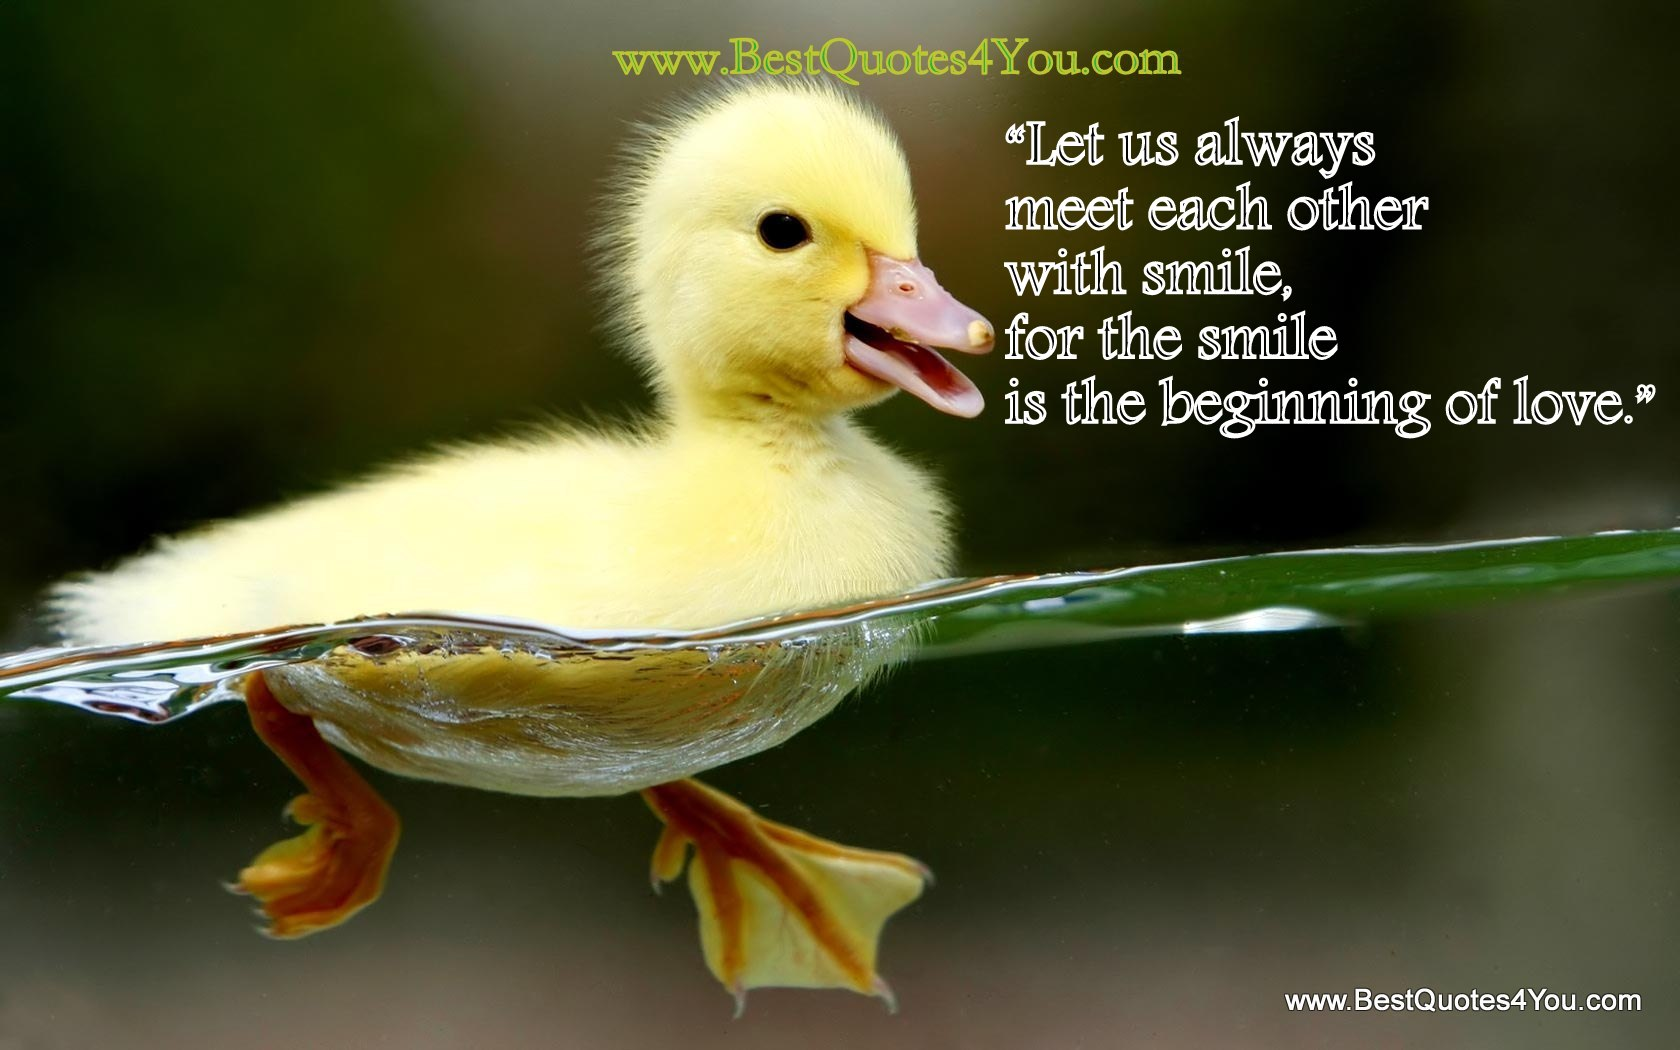 Let Us Always Meet Each Other With Smile For The Smile Is The Beginning of Love""